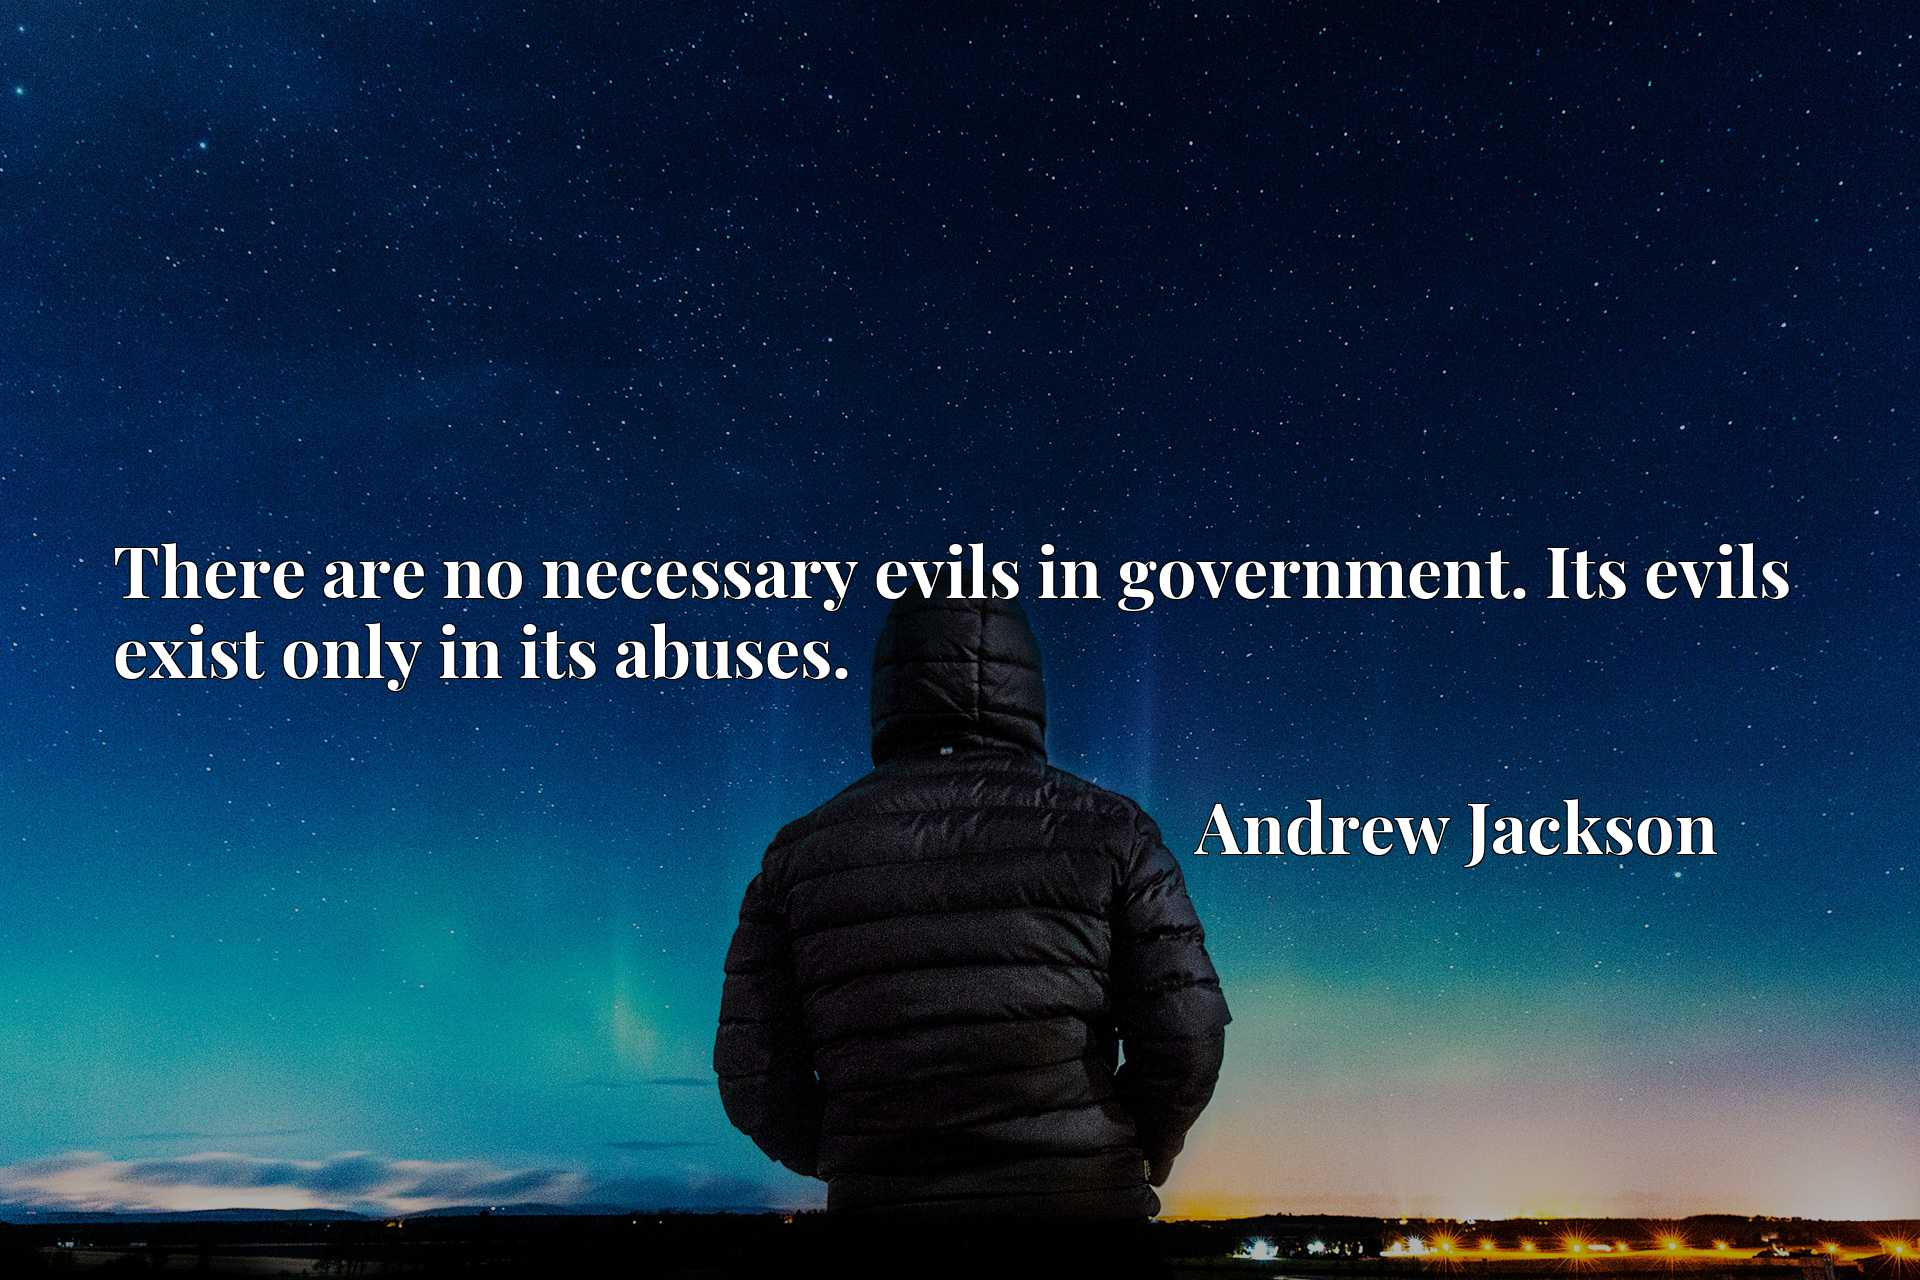 There are no necessary evils in government. Its evils exist only in its abuses.